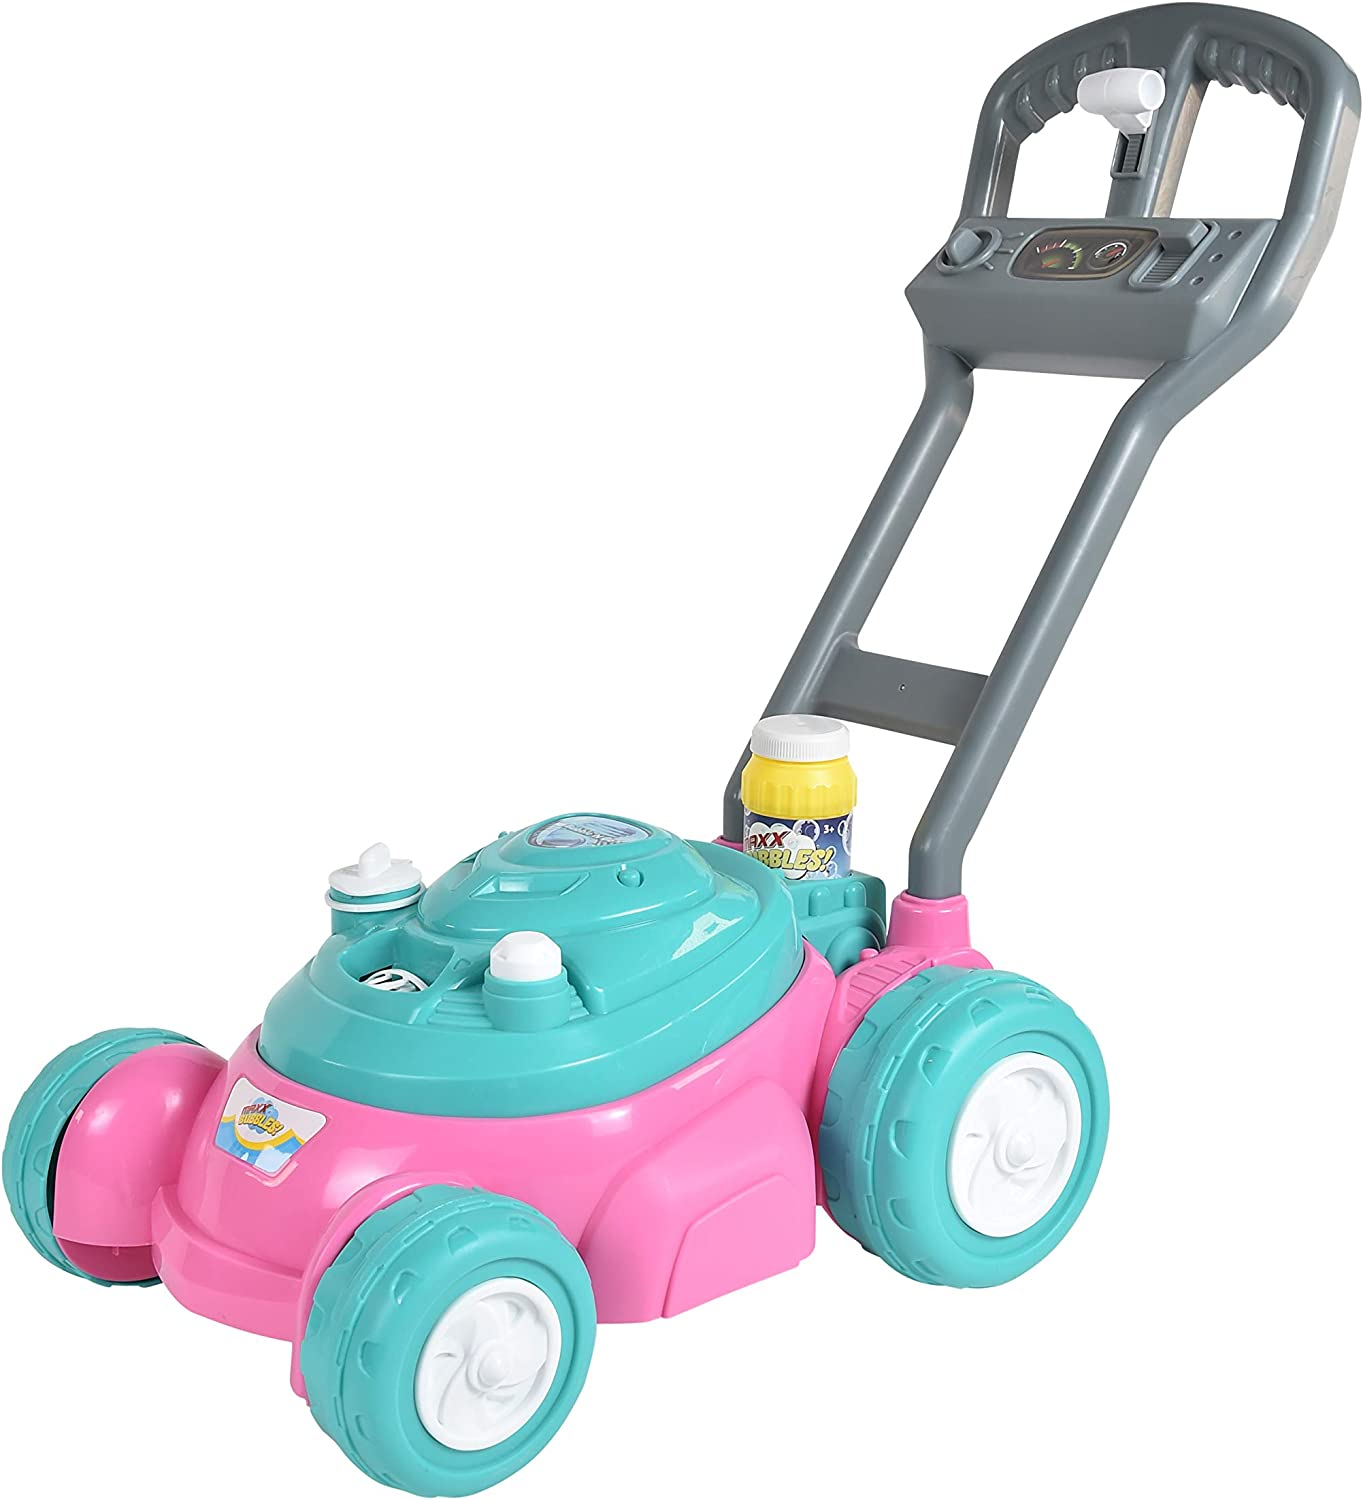 Top 7 Best Bubble Lawn Mower For Kids & Toddlers 2020 3